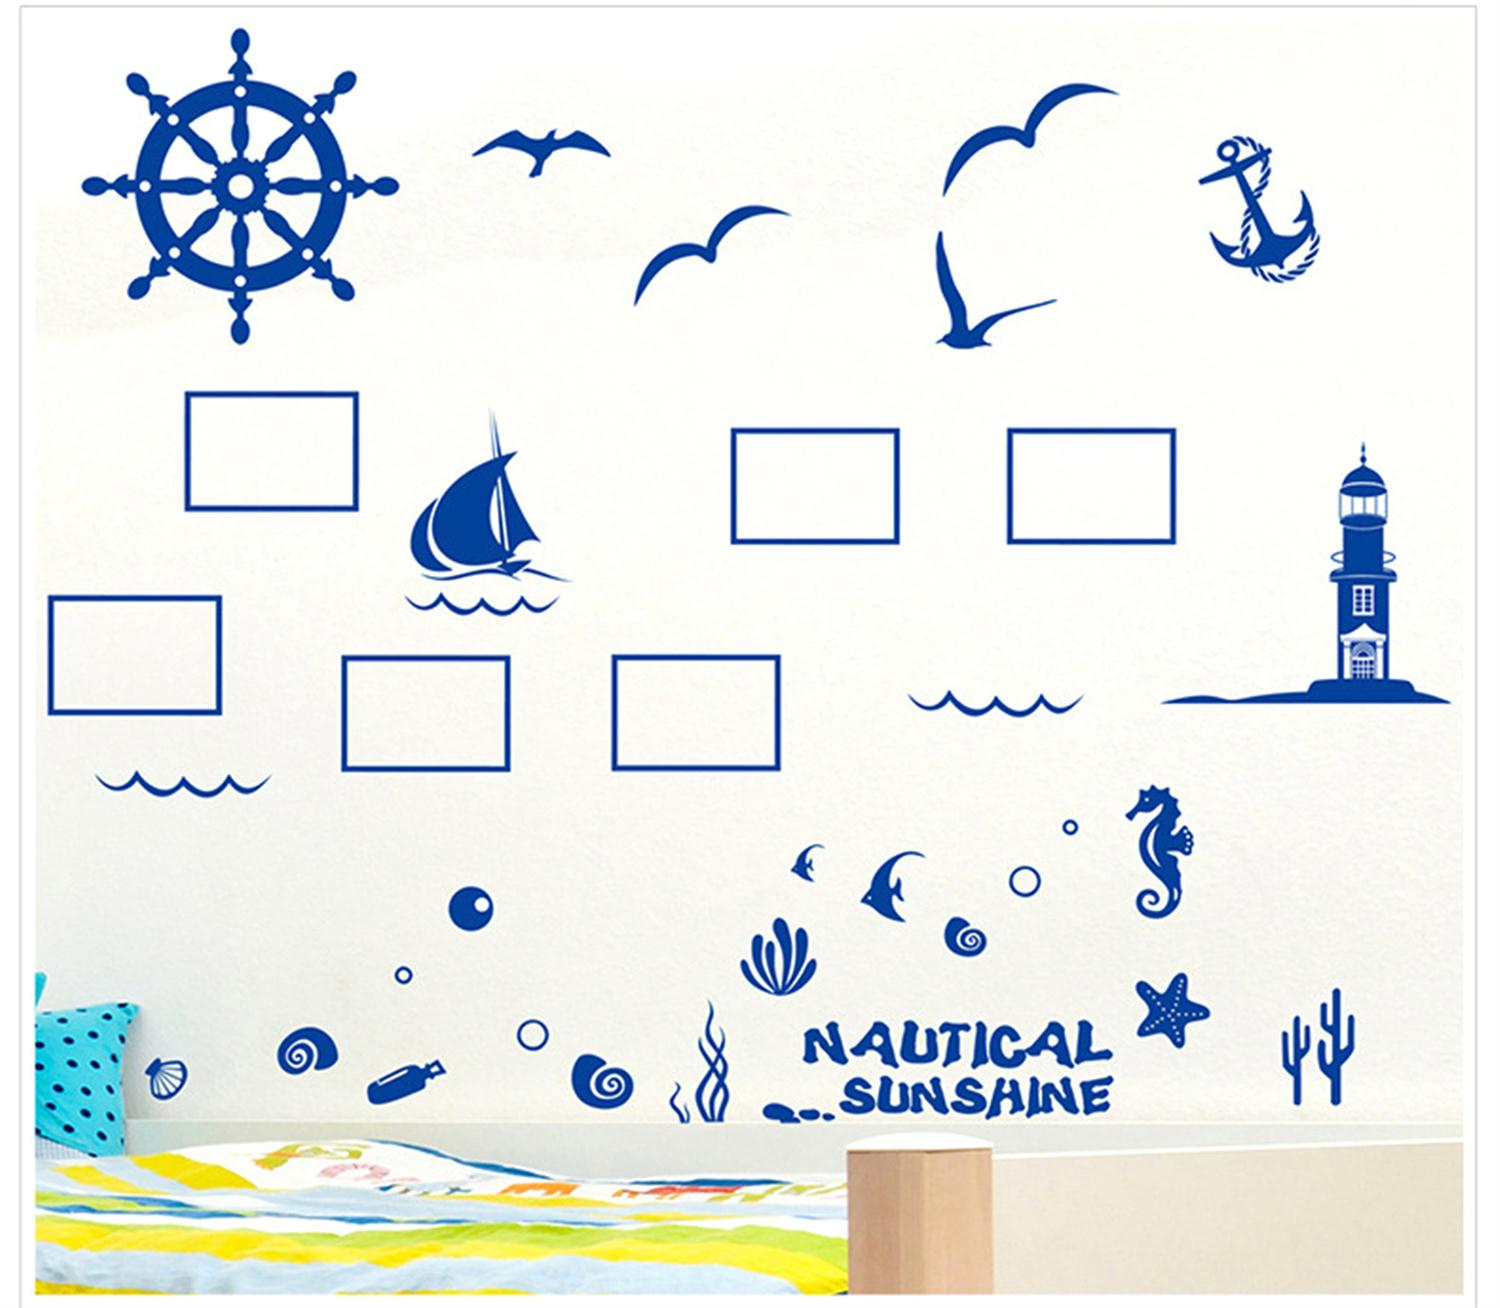 Meditation <font><b>Nautical</b></font> <font><b>Decor</b></font> Bird Room Decoration Fashion Removable Wallpaper Diy Wall Decals Wall Stickers <font><b>Home</b></font> <font><b>Decor</b></font> Living Room